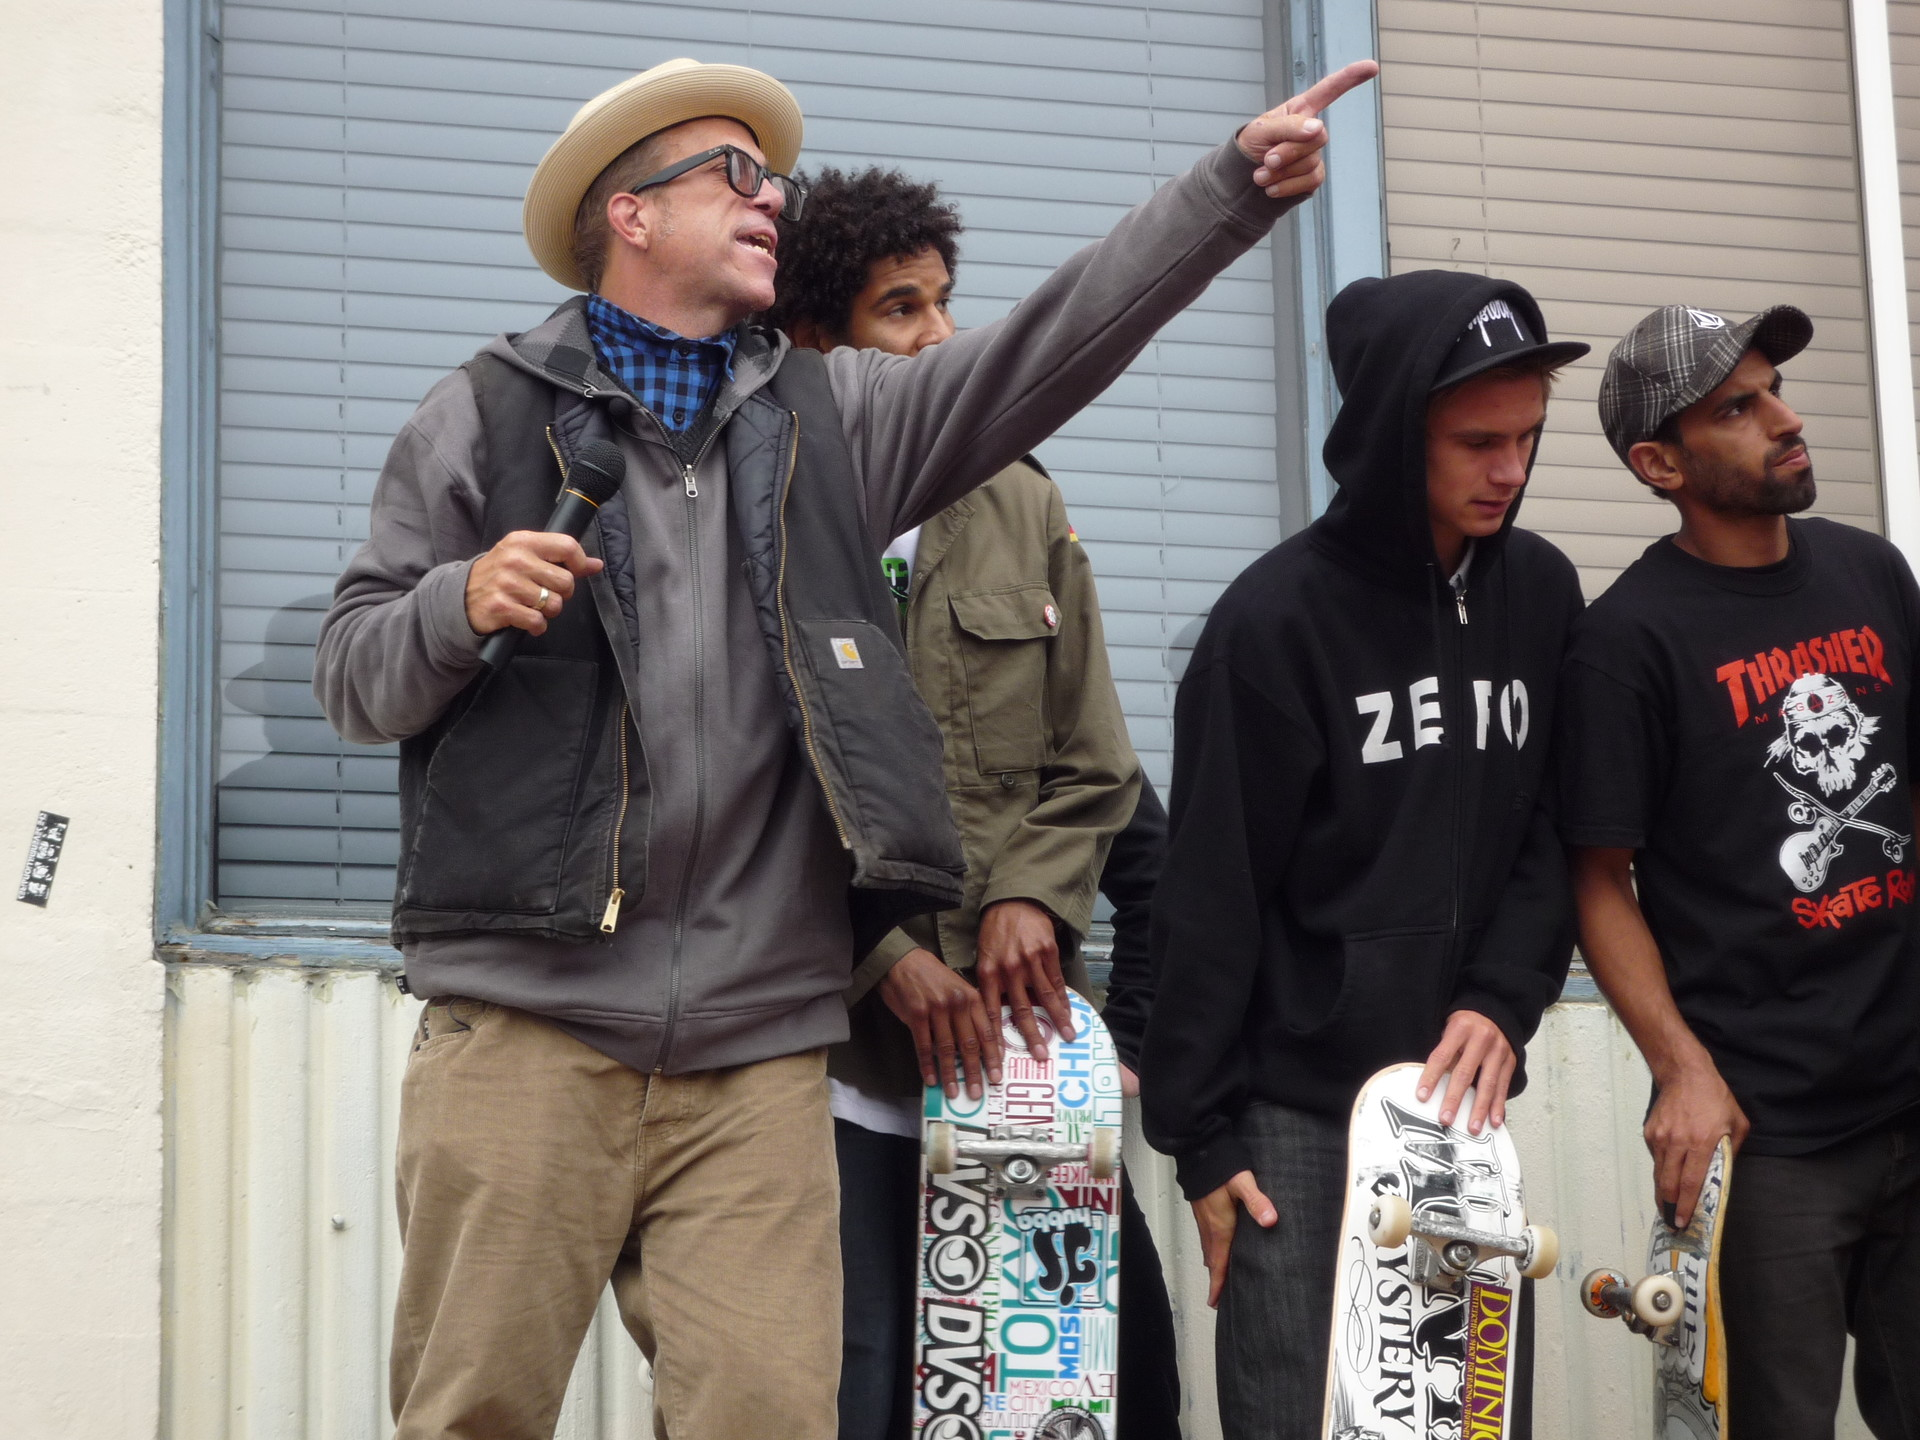 Jake Phelps Picture: Jake Phelps, Skateboarder And 'Thrasher' Editor, Dies At